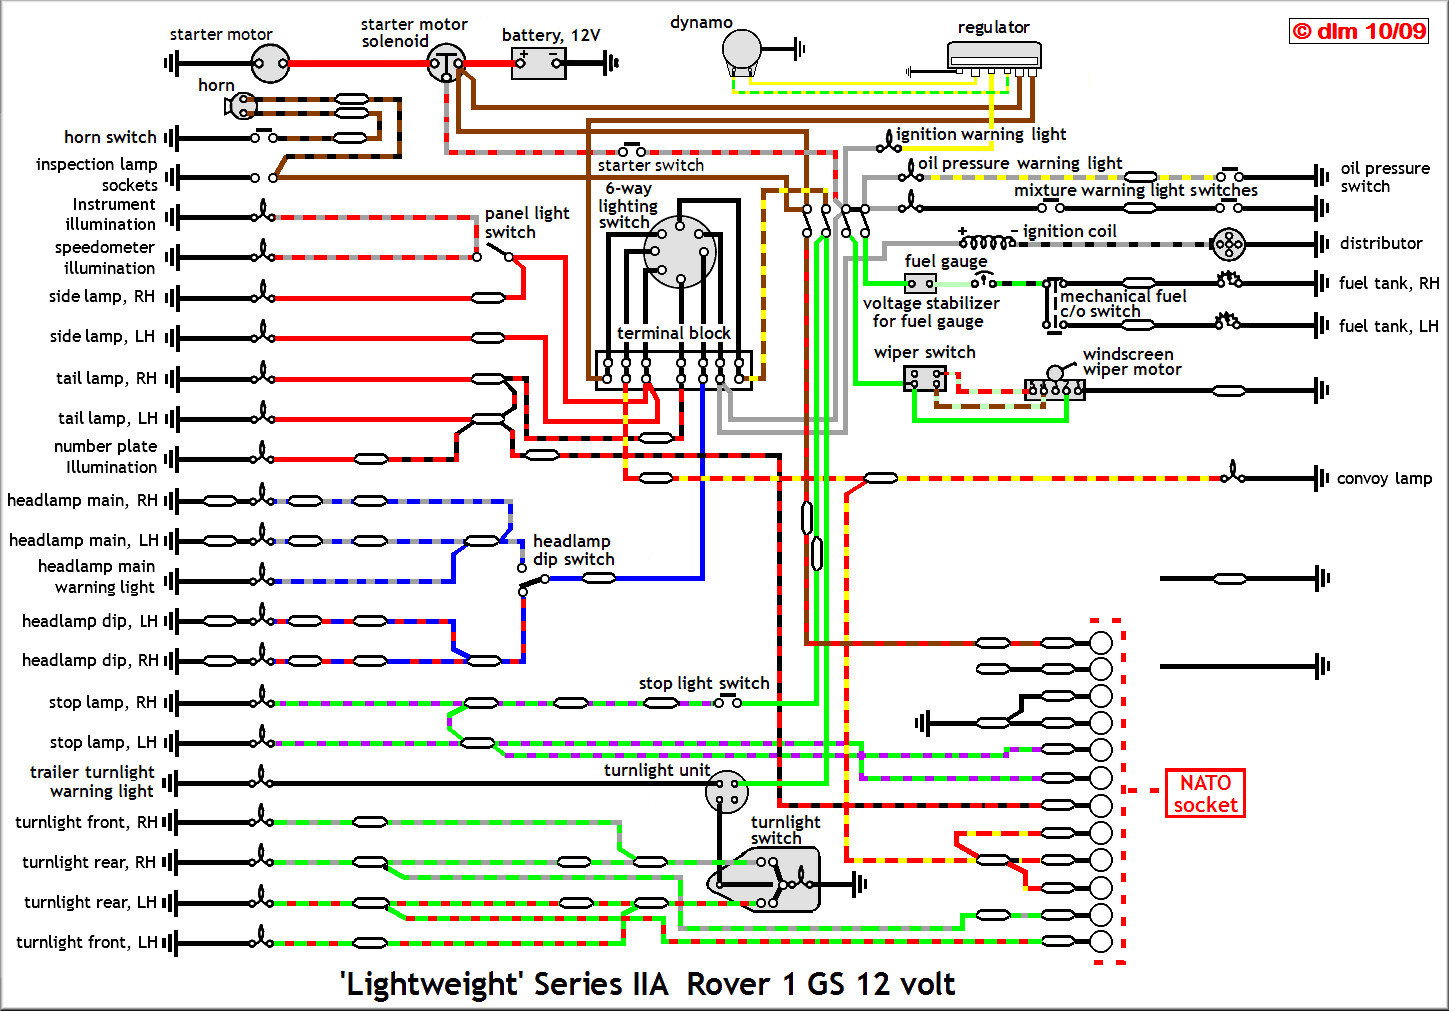 land rover lightweight series 2a rover 1 12v circuit diagram